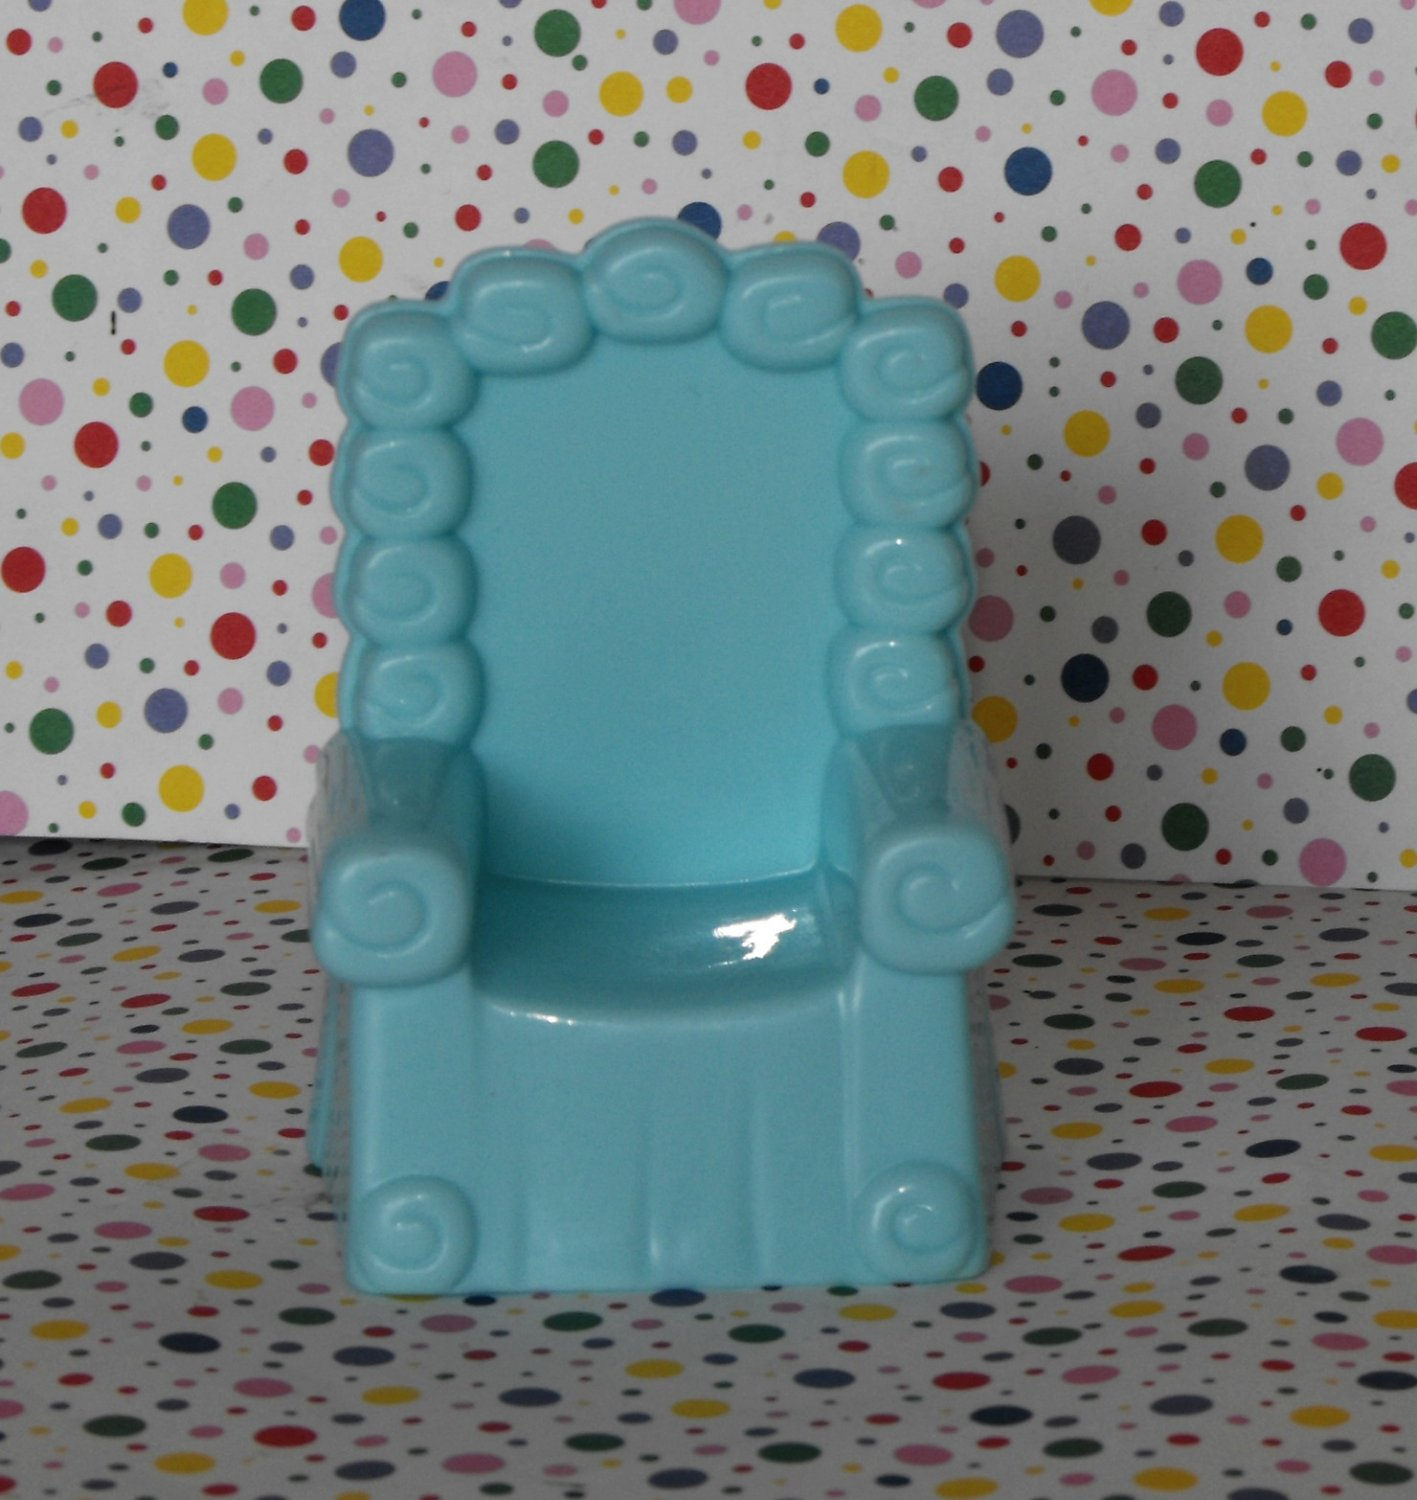 Dora the Explorer Dollhouse Magical Fantasy Adventure Room Throne Chair Part